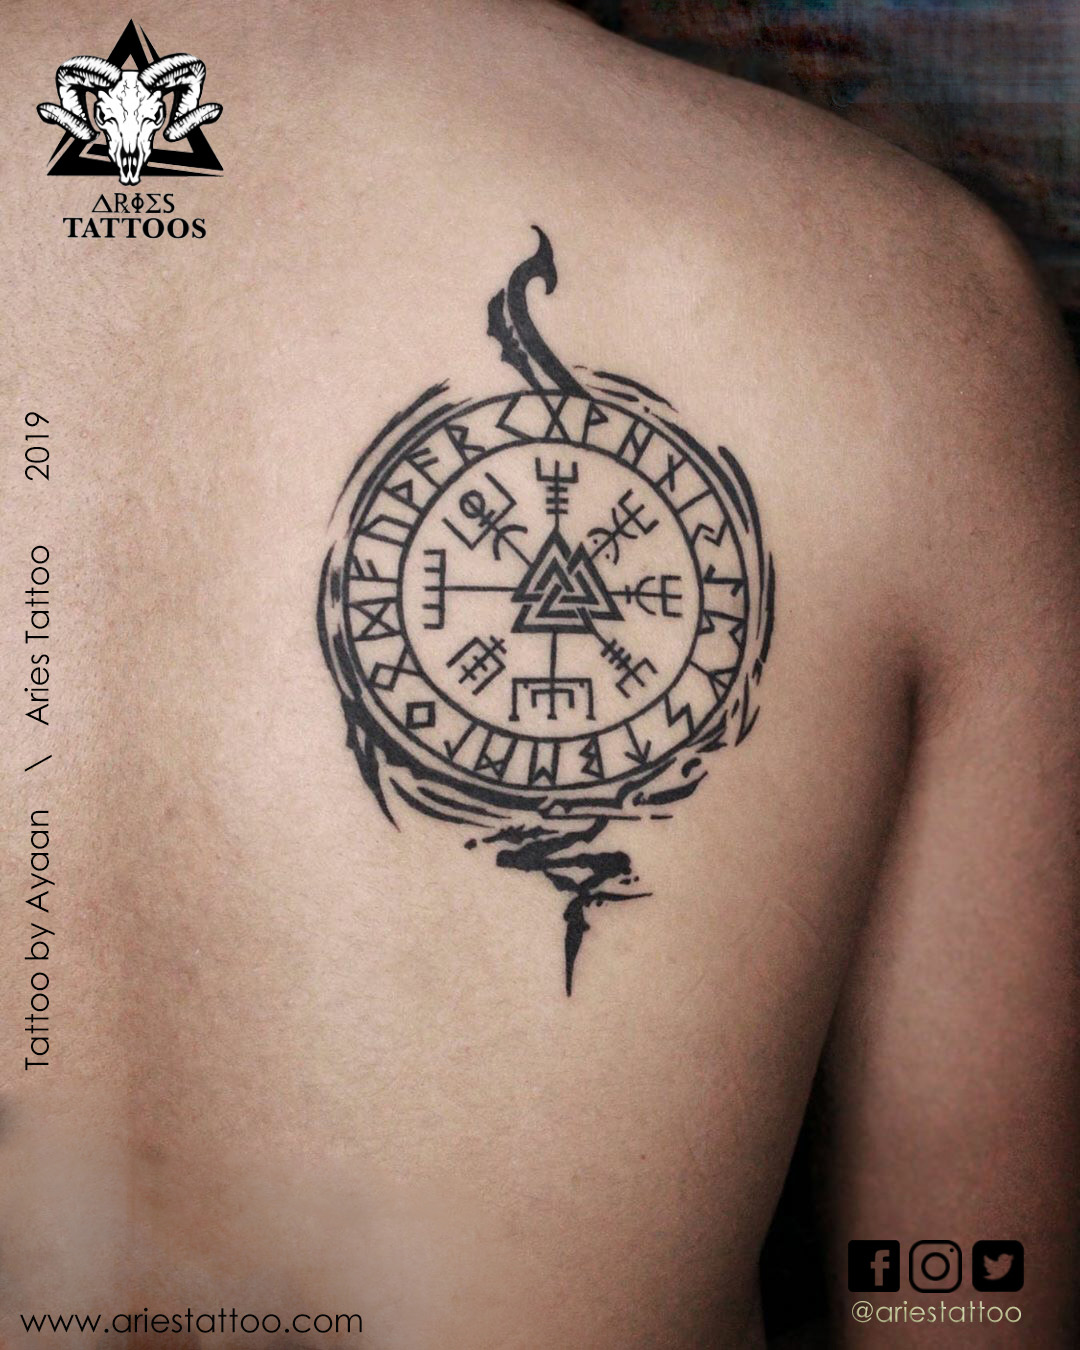 Waiking tattoo By ayaan |Aries Tattoo Noida | Tattoo Shop and Studio In Noida